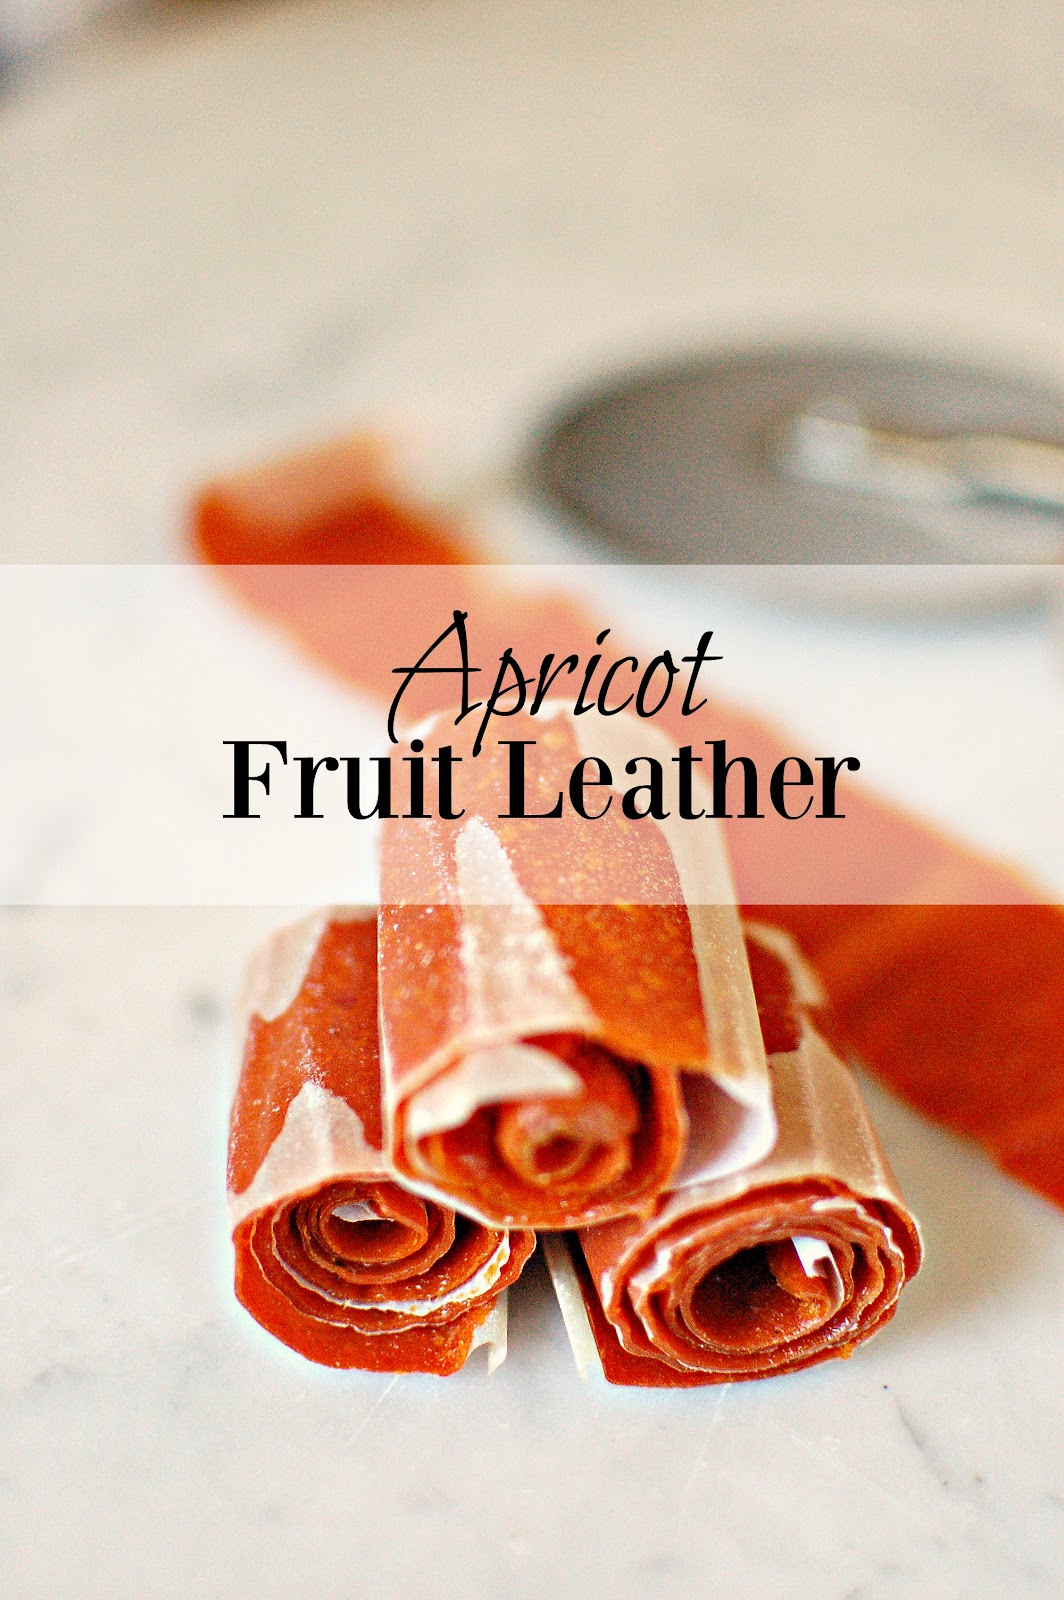 Apricot Fruit Leather.jpg